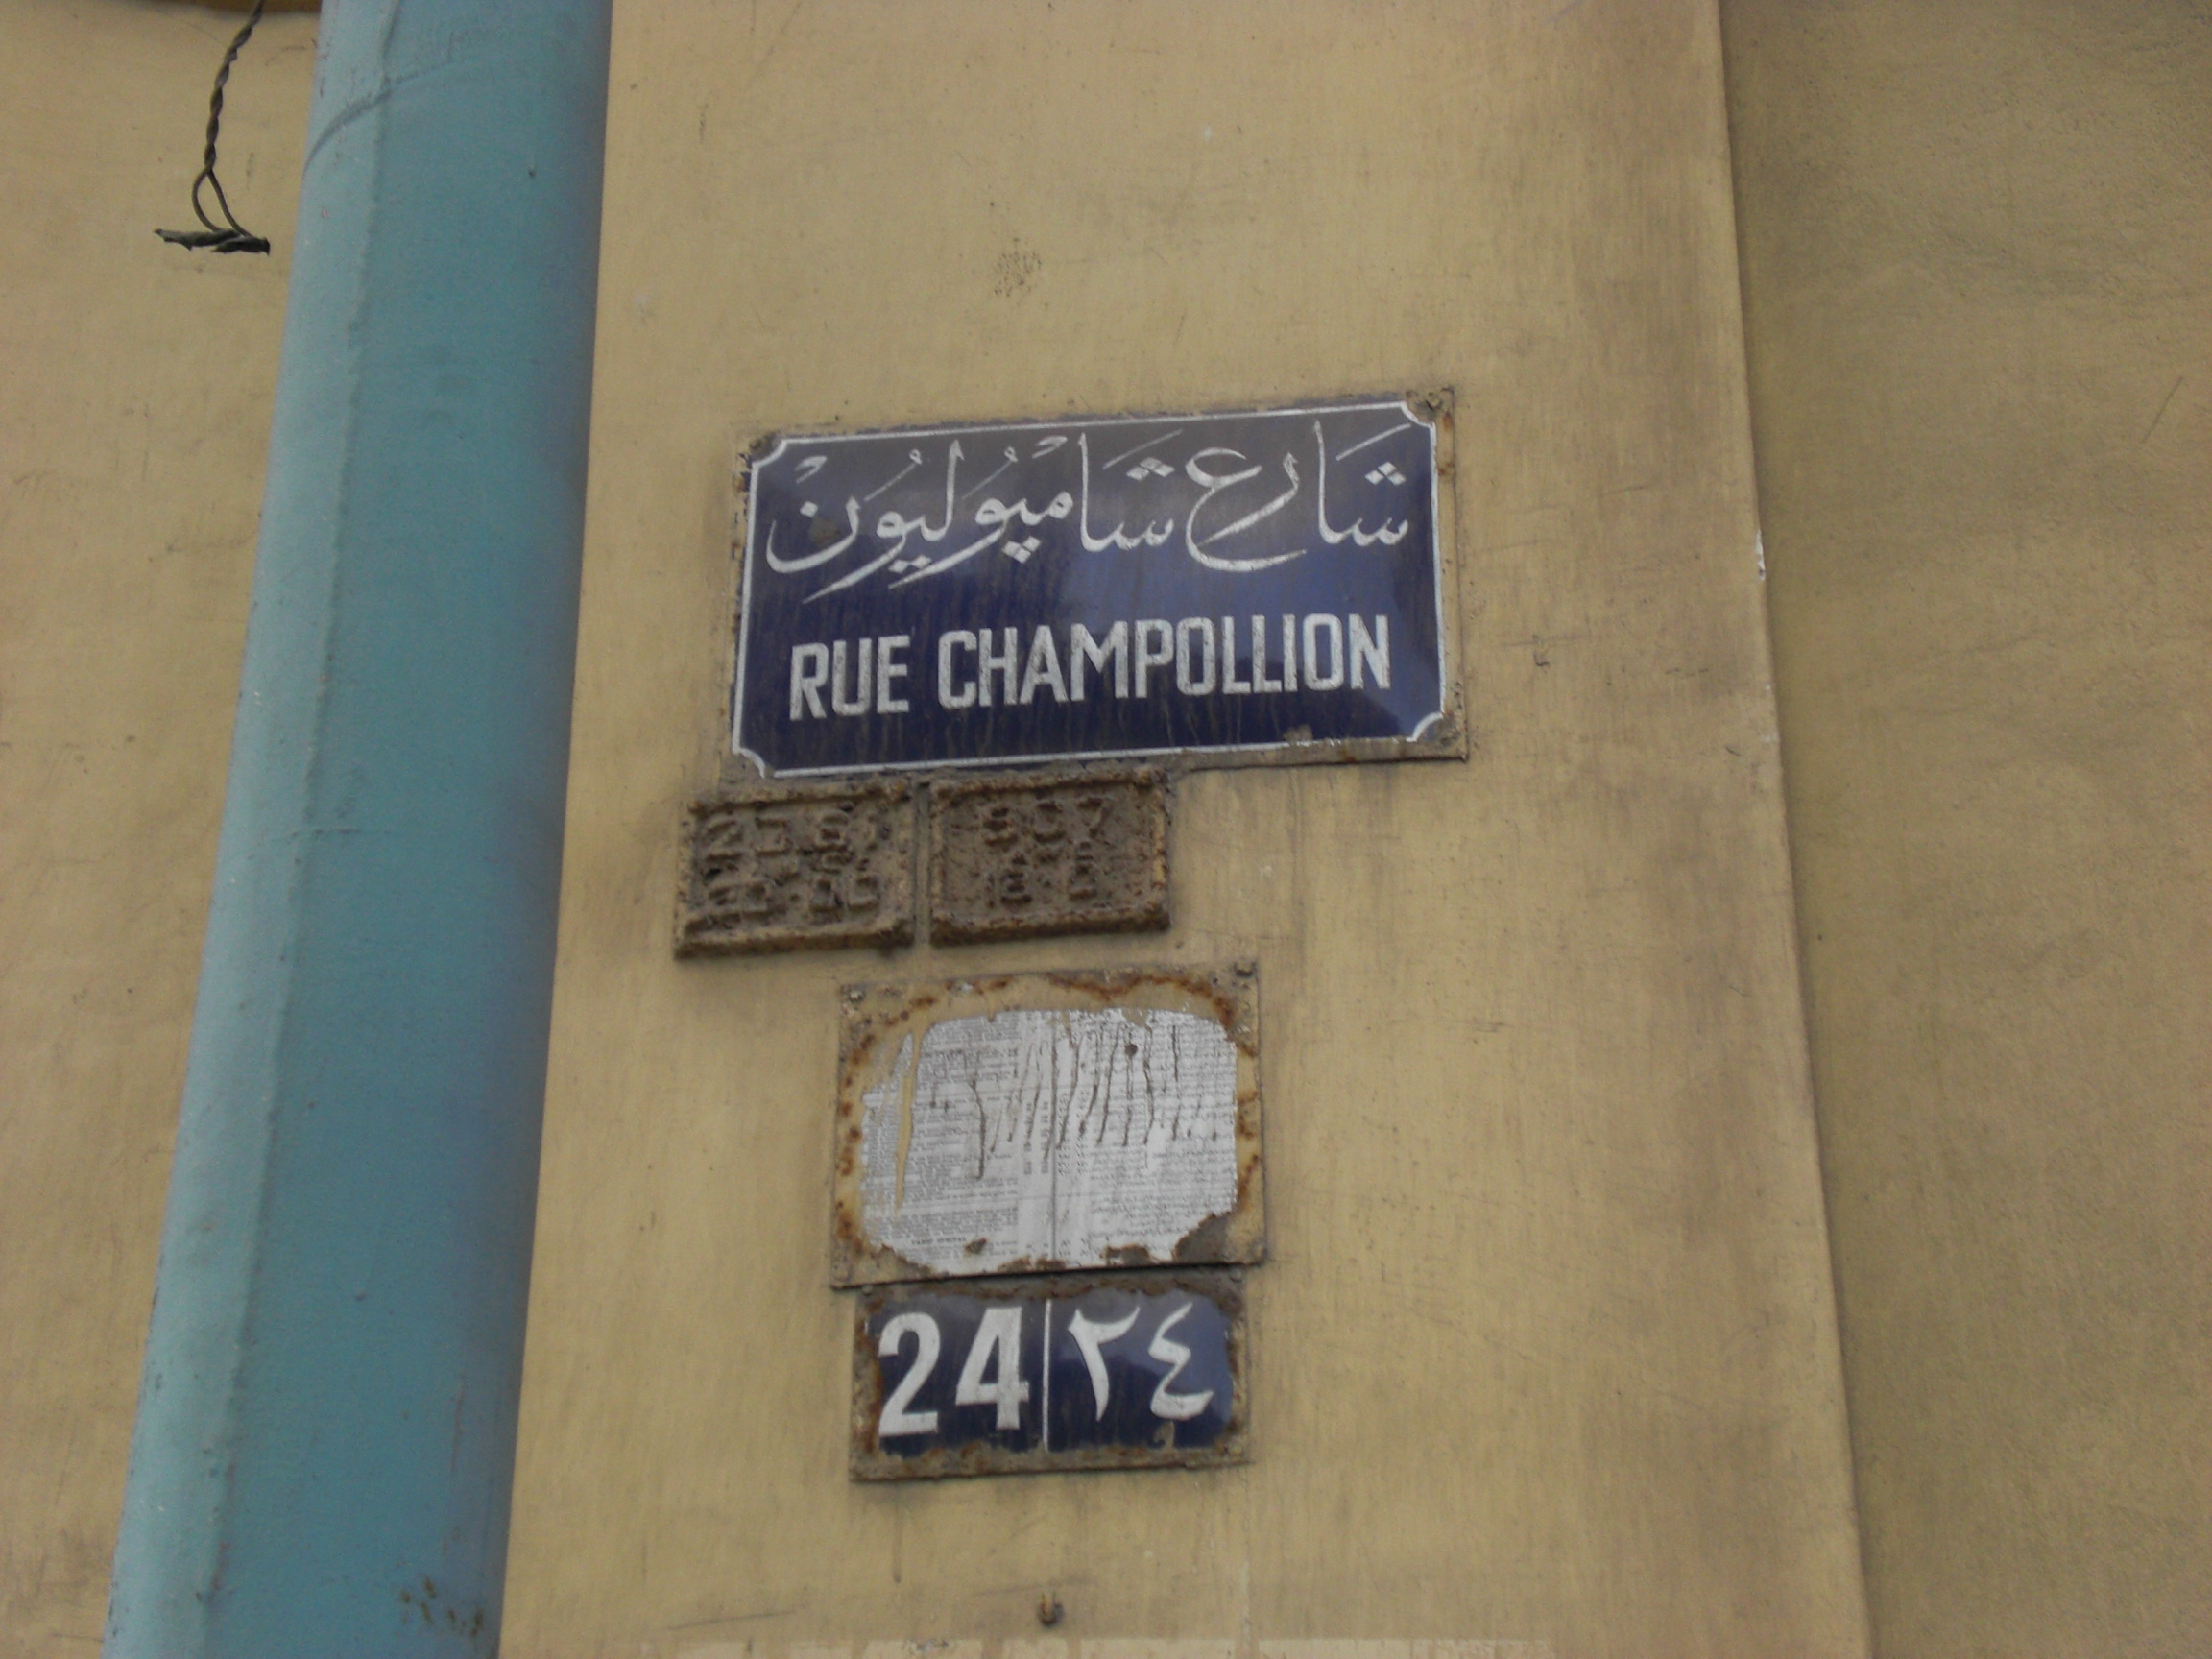 http://upload.wikimedia.org/wikipedia/commons/a/af/Rue_Champollion_in_Alexandria.JPG